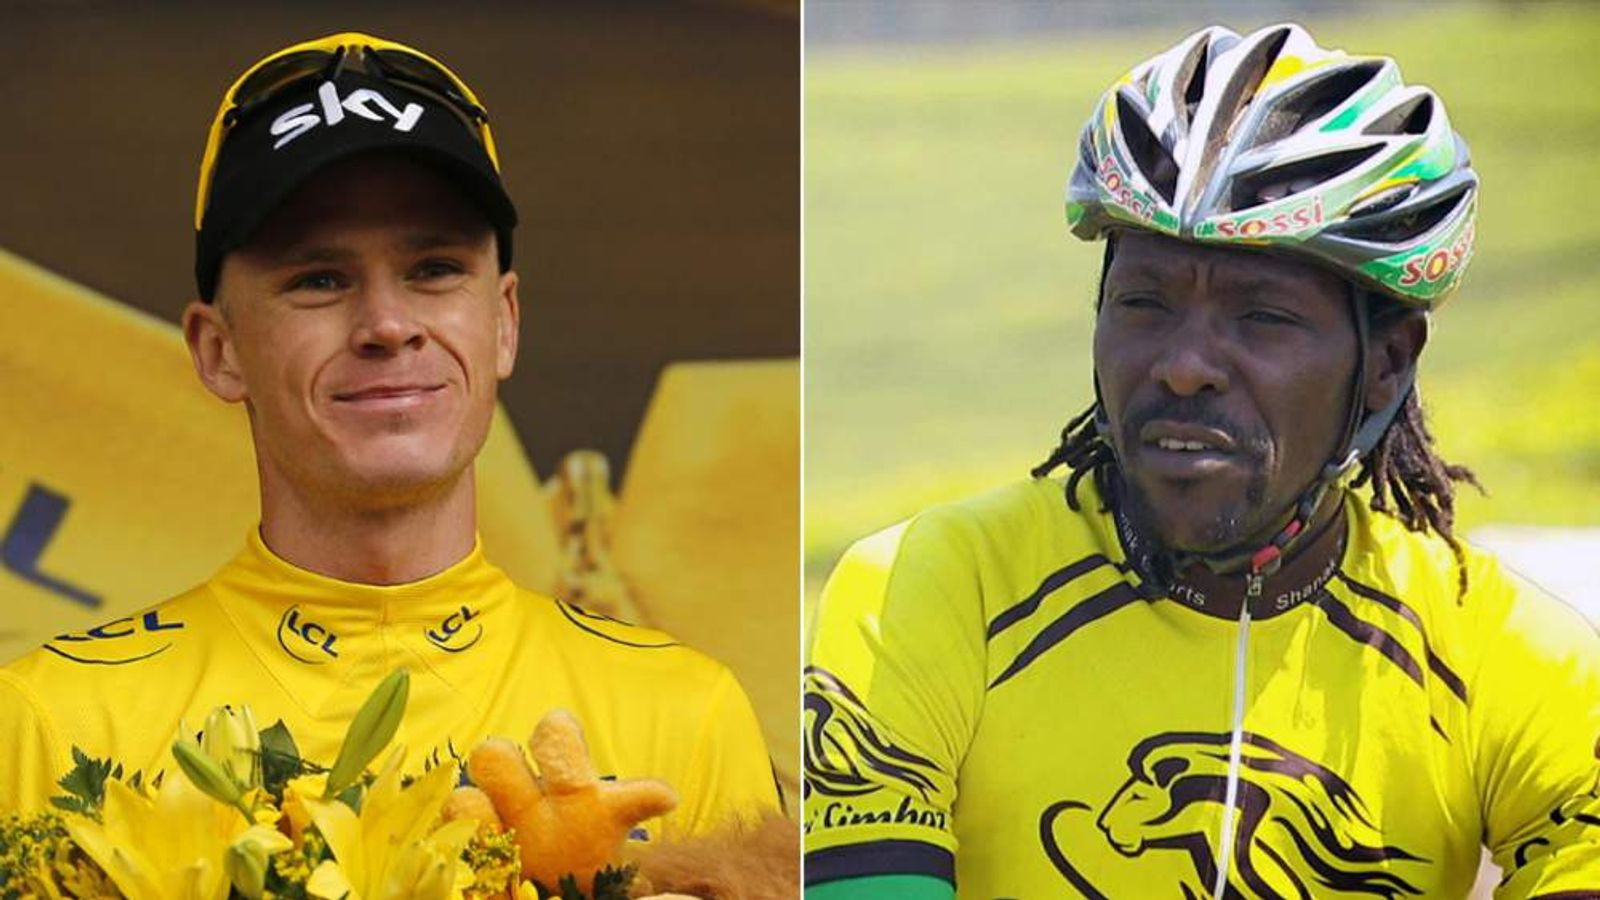 Chris Froome and his Kenyan mentor David Kinjah